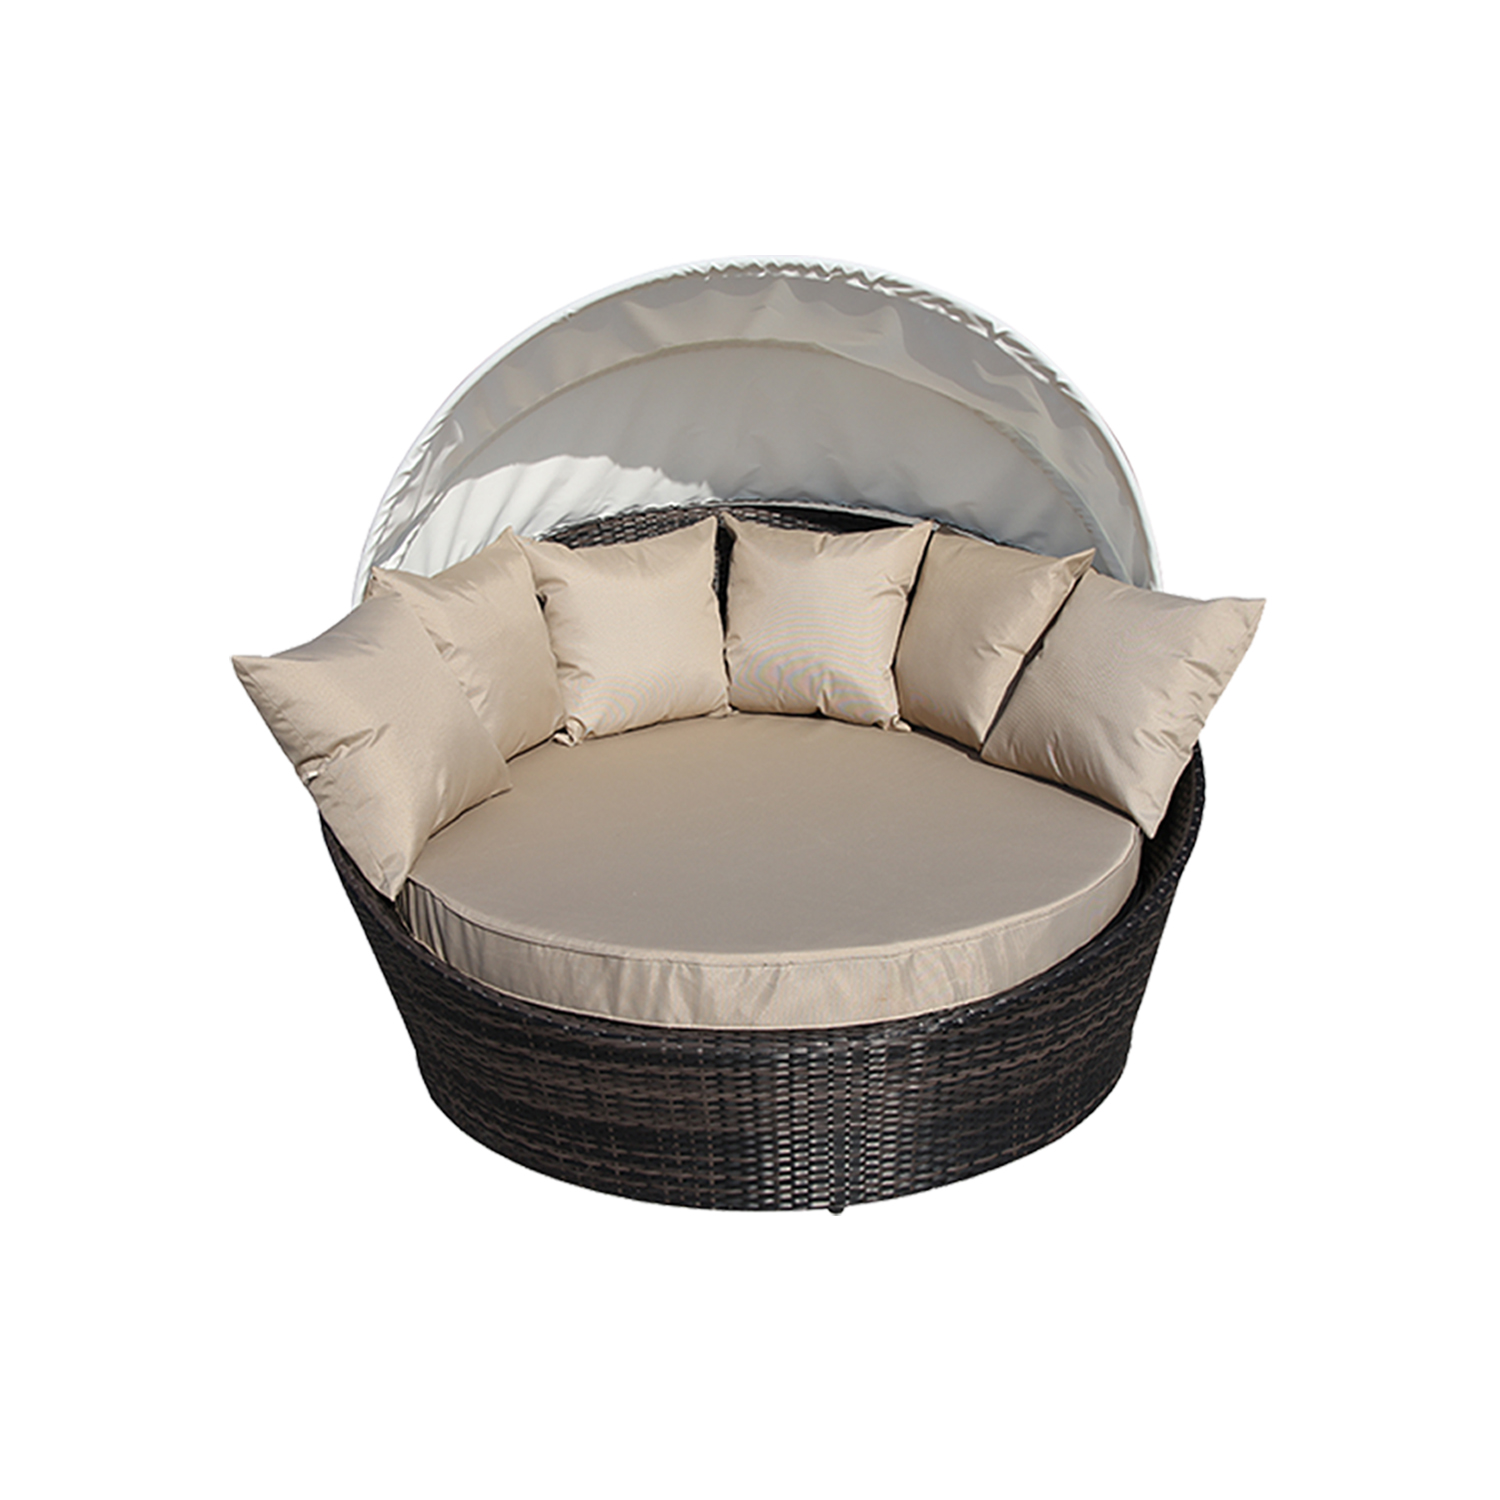 cabana round wicker outdoor furniture rattan sofa lounge w canopy cover black ebay. Black Bedroom Furniture Sets. Home Design Ideas